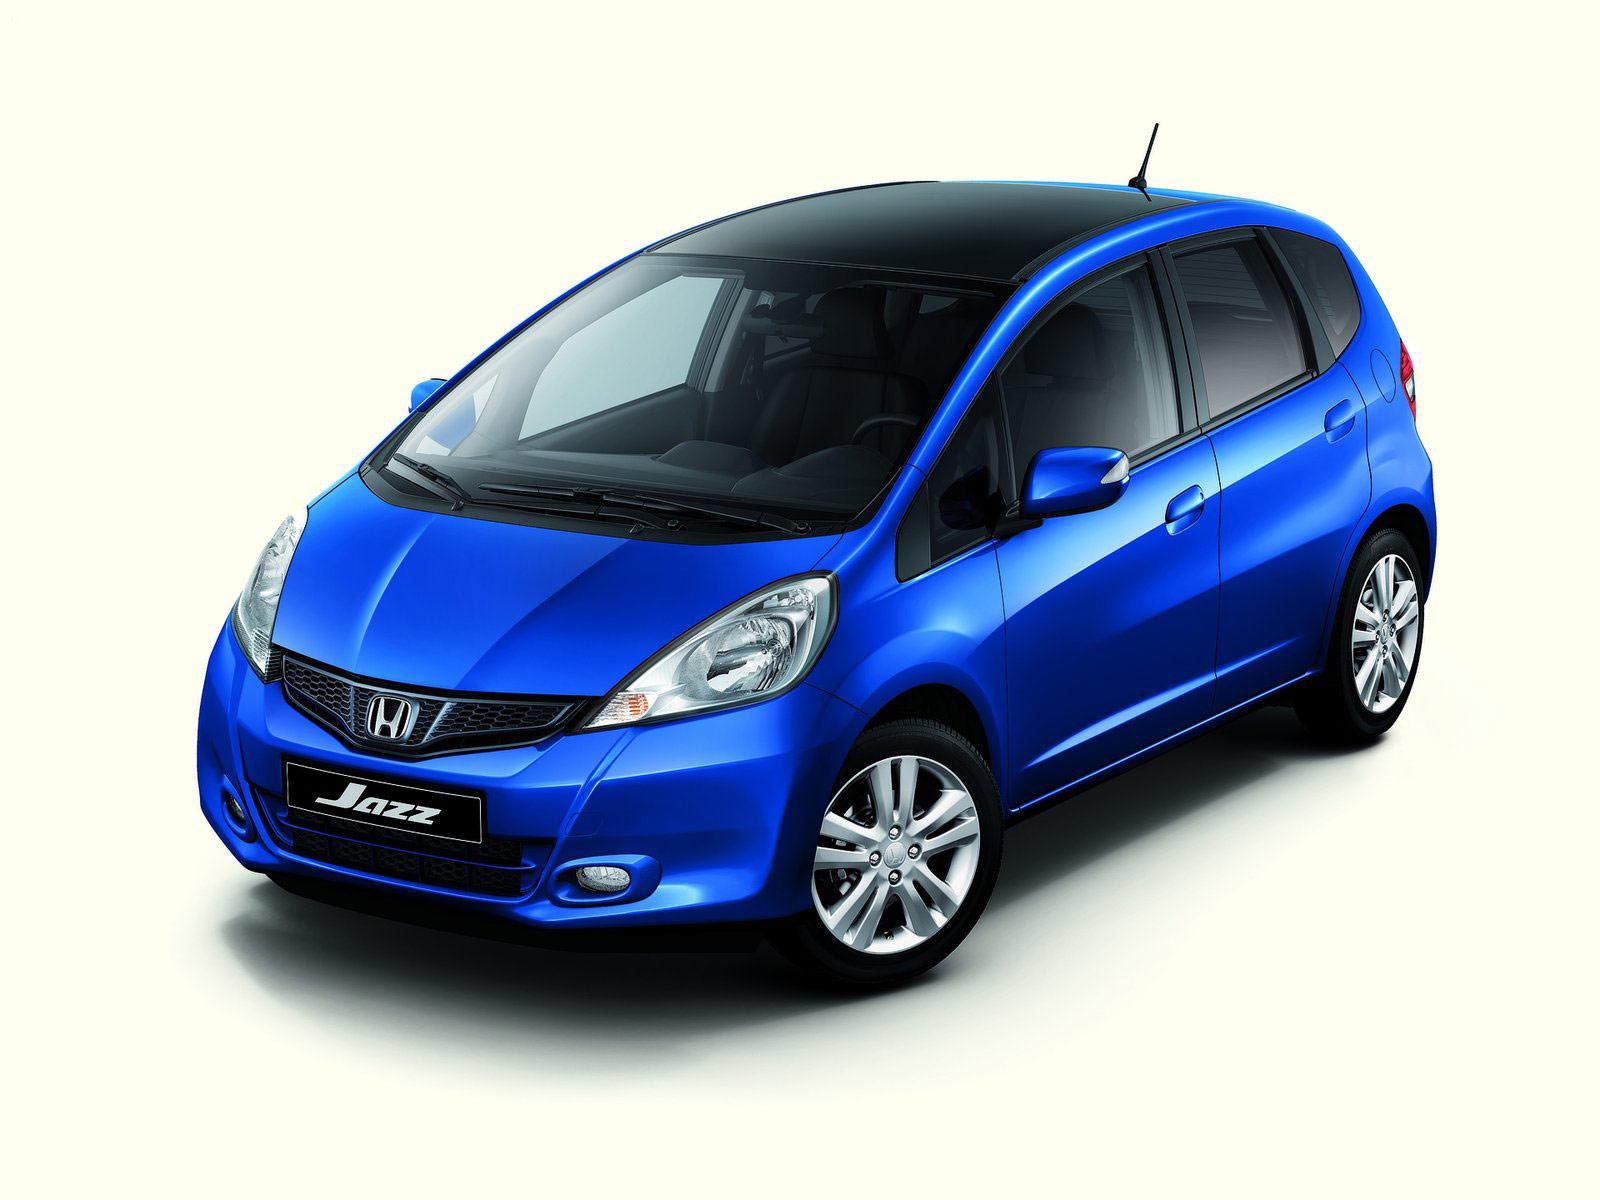 HONDA Jazz 2011 Japanese Car Photos